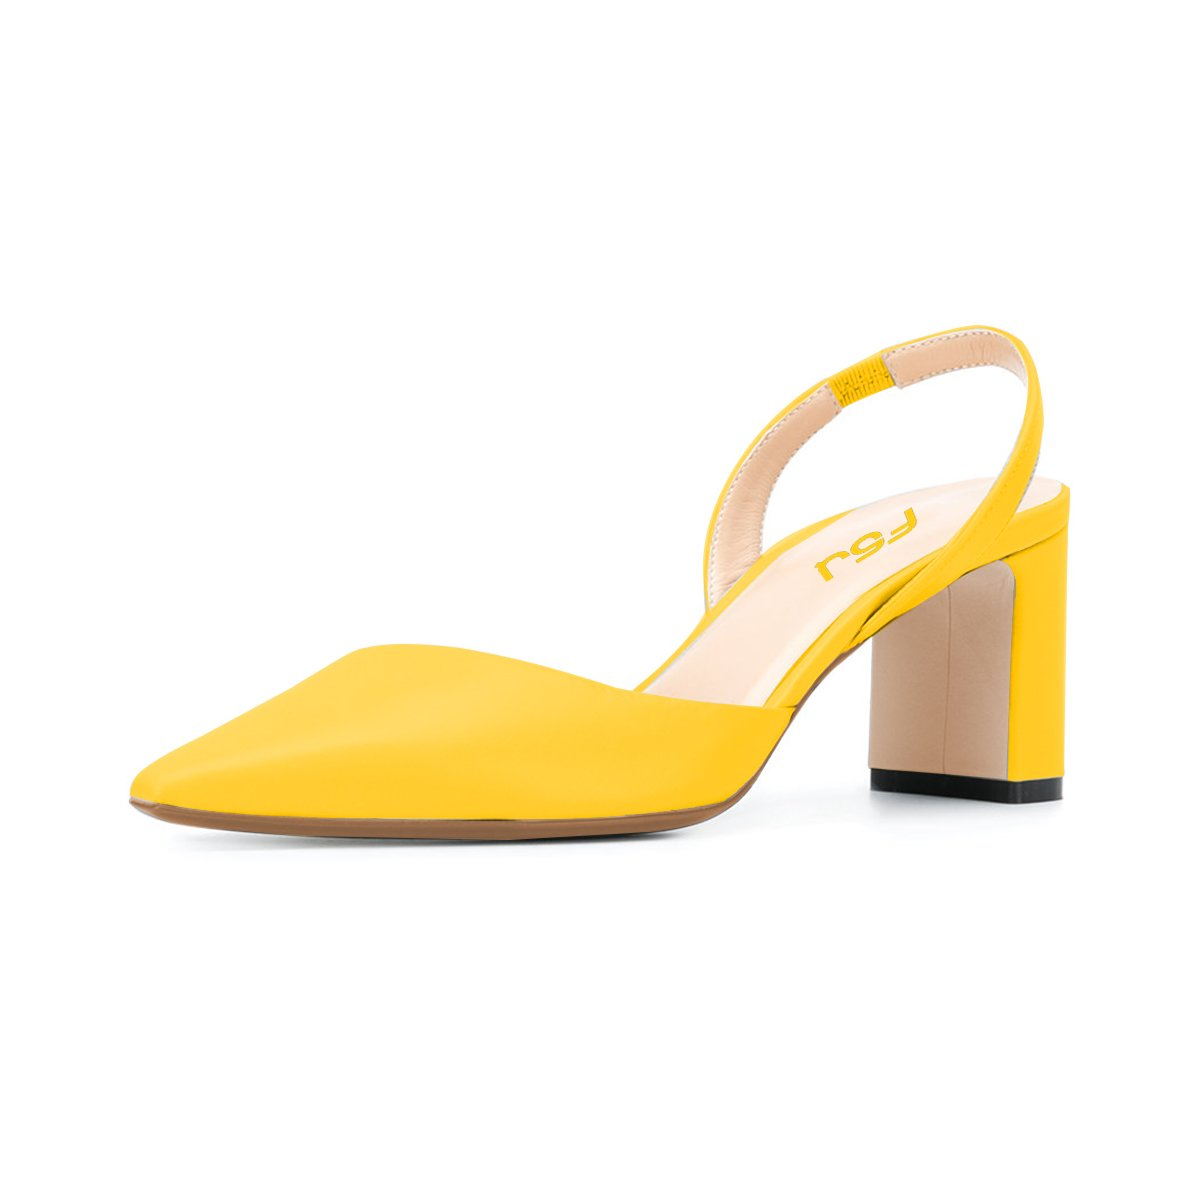 FSJ Women Classic Pointy Toe Pumps Chunky Mid Heels Slingback Sandals Comfortable Shoes Size 4-15 US B07BXRMZH8 10 B(M) US|Yellow